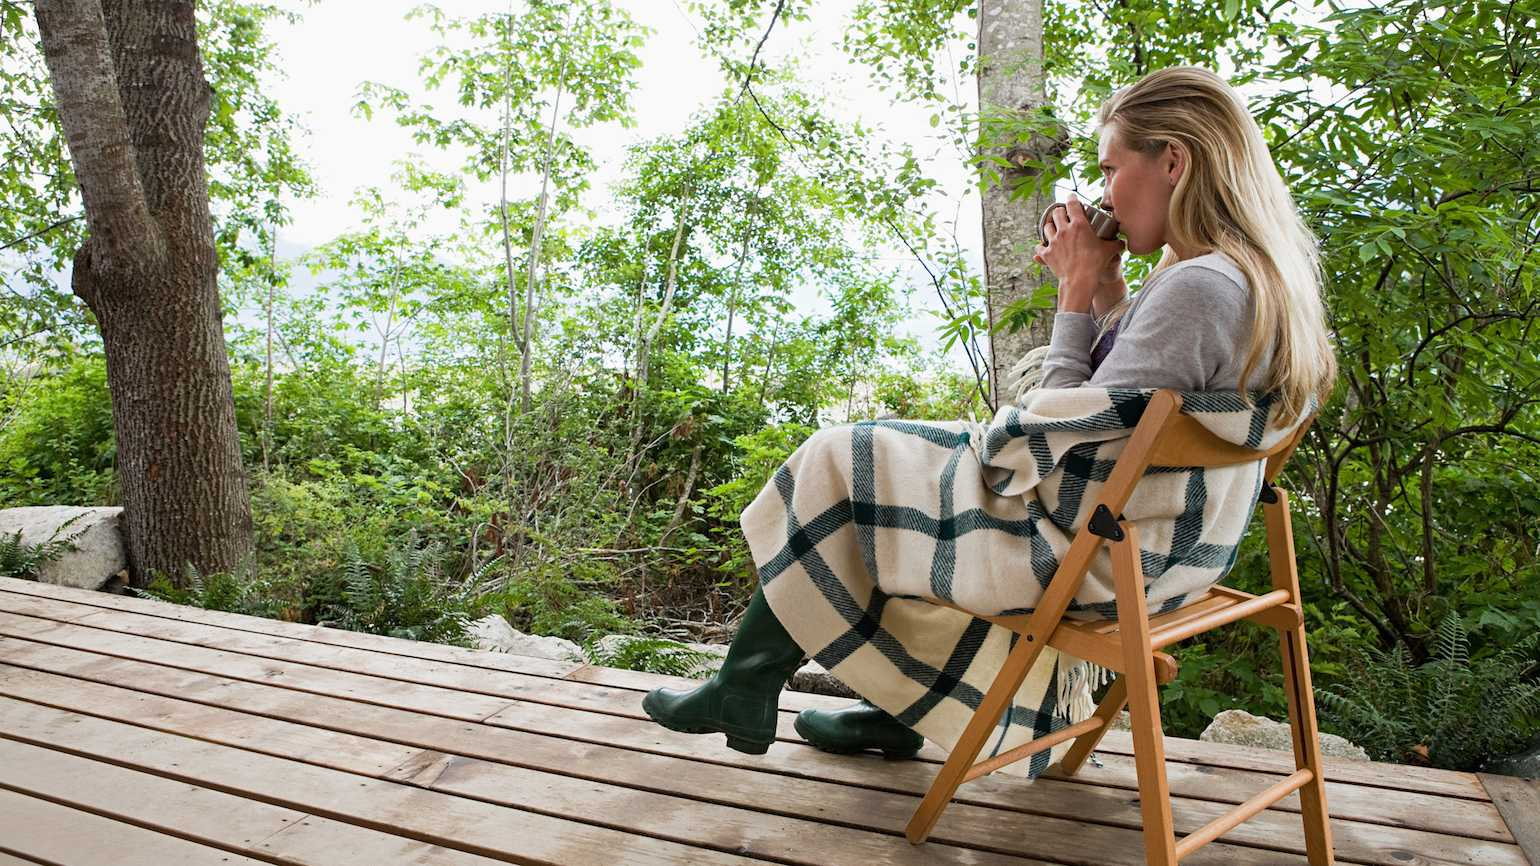 6 Ways to Find More Quiet Time